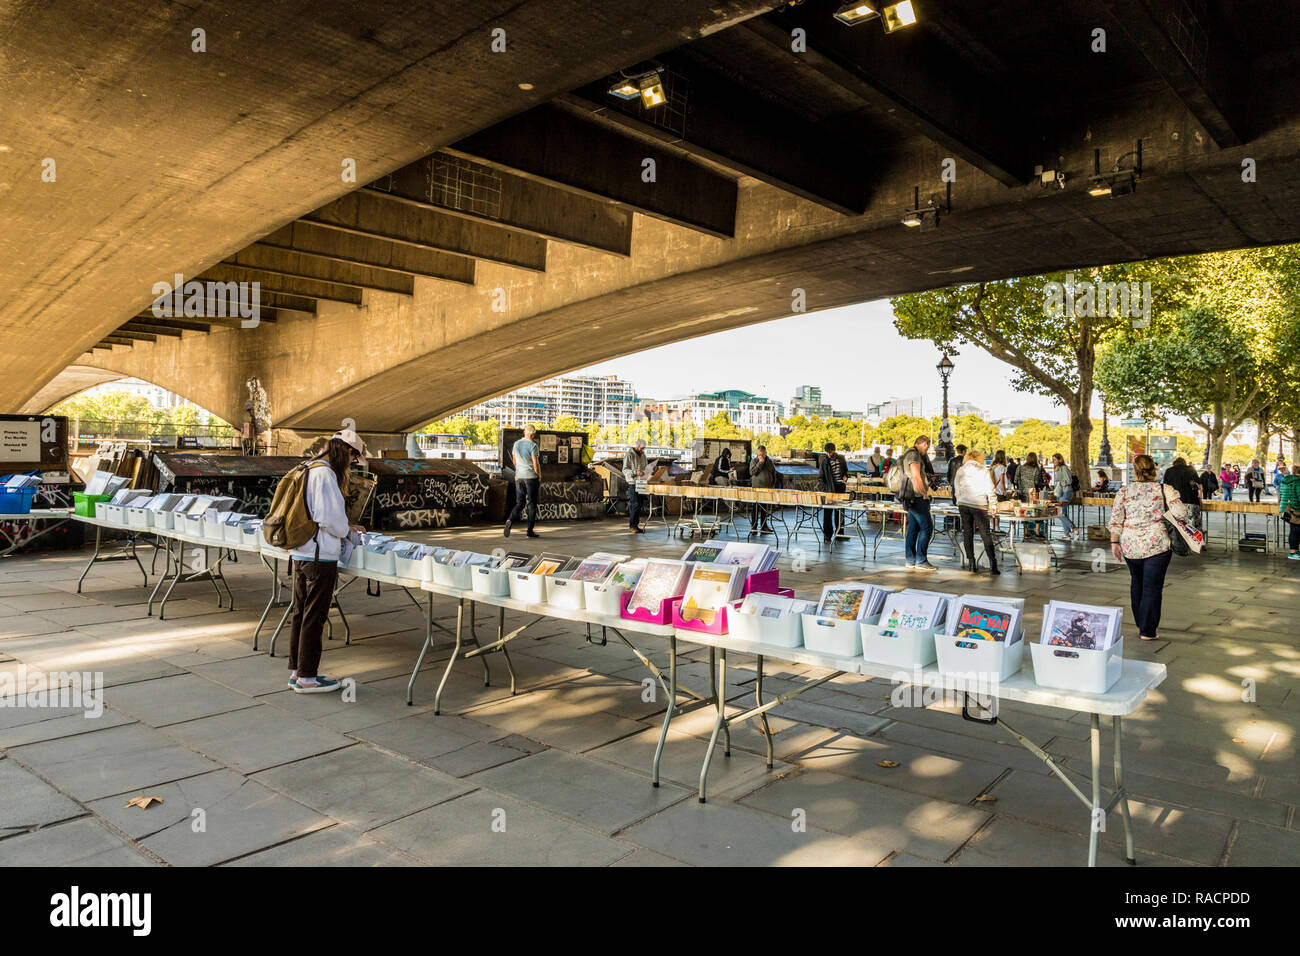 A second hand book stall on the South Bank, London, England, United Kingdom, Europe - Stock Image